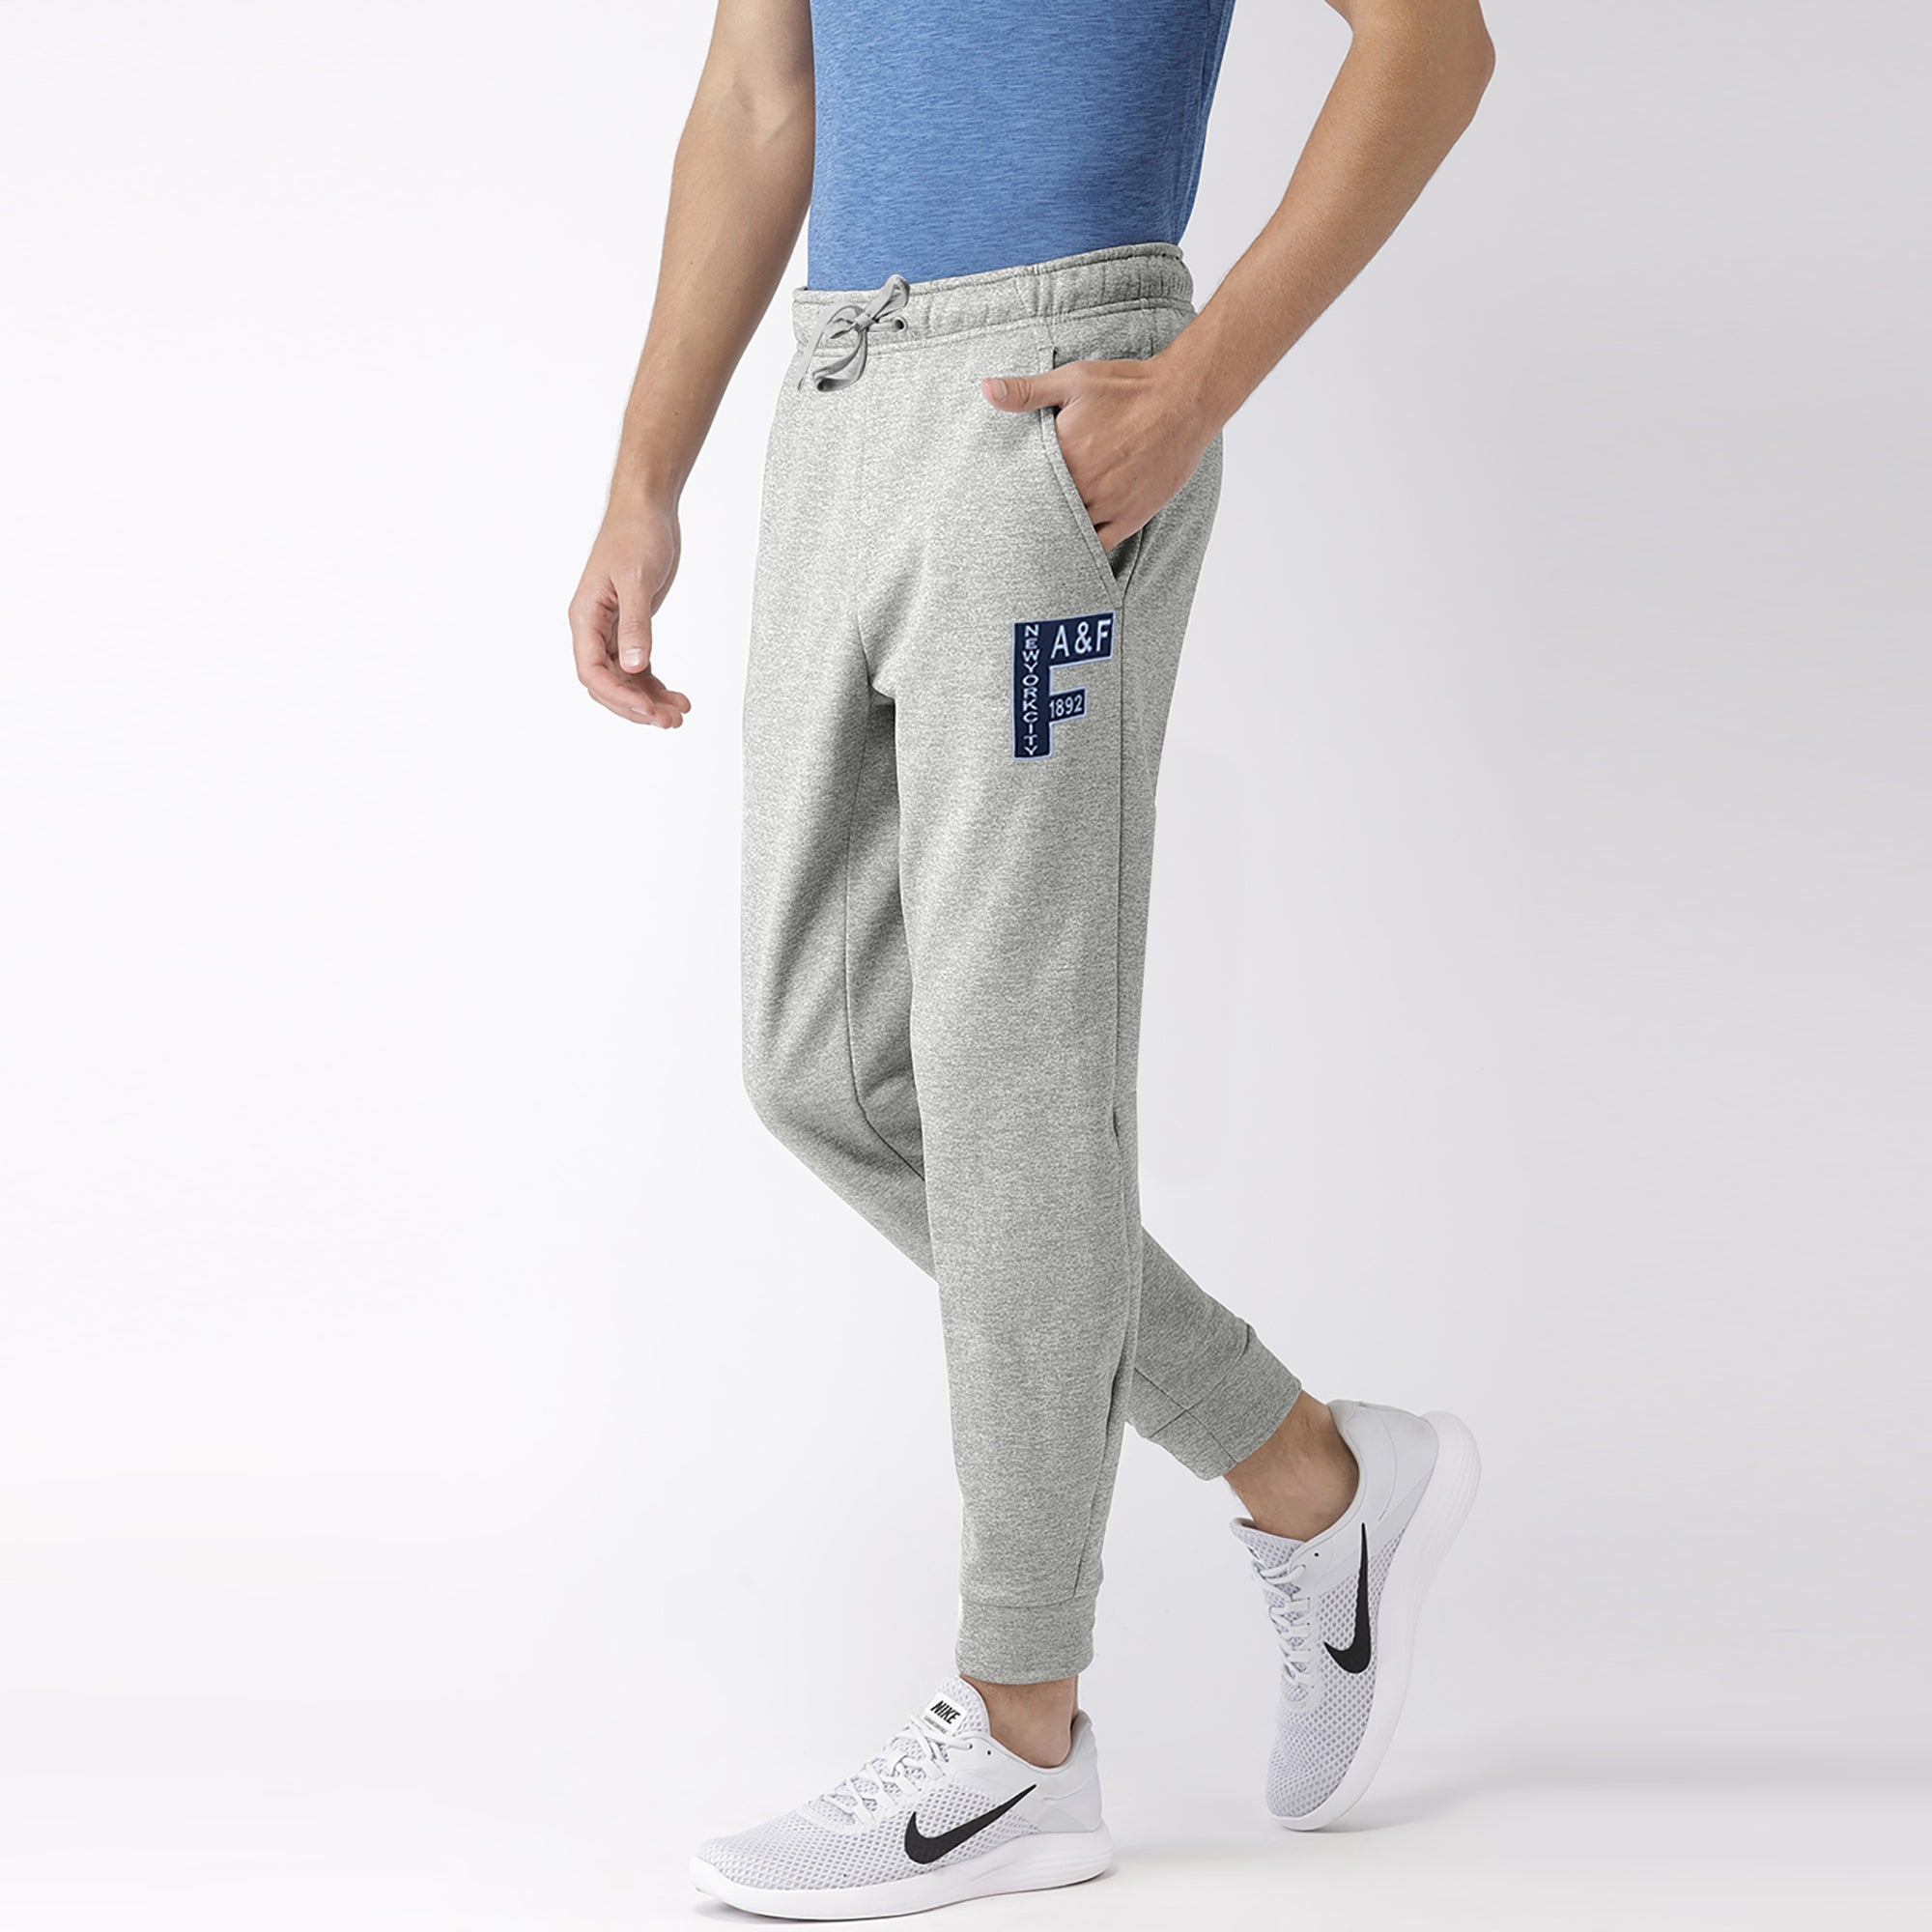 brandsego - A&F Fleece Slim Fit Rib Bottom Jogger Trouser For Men-Grey Melange-BE7458